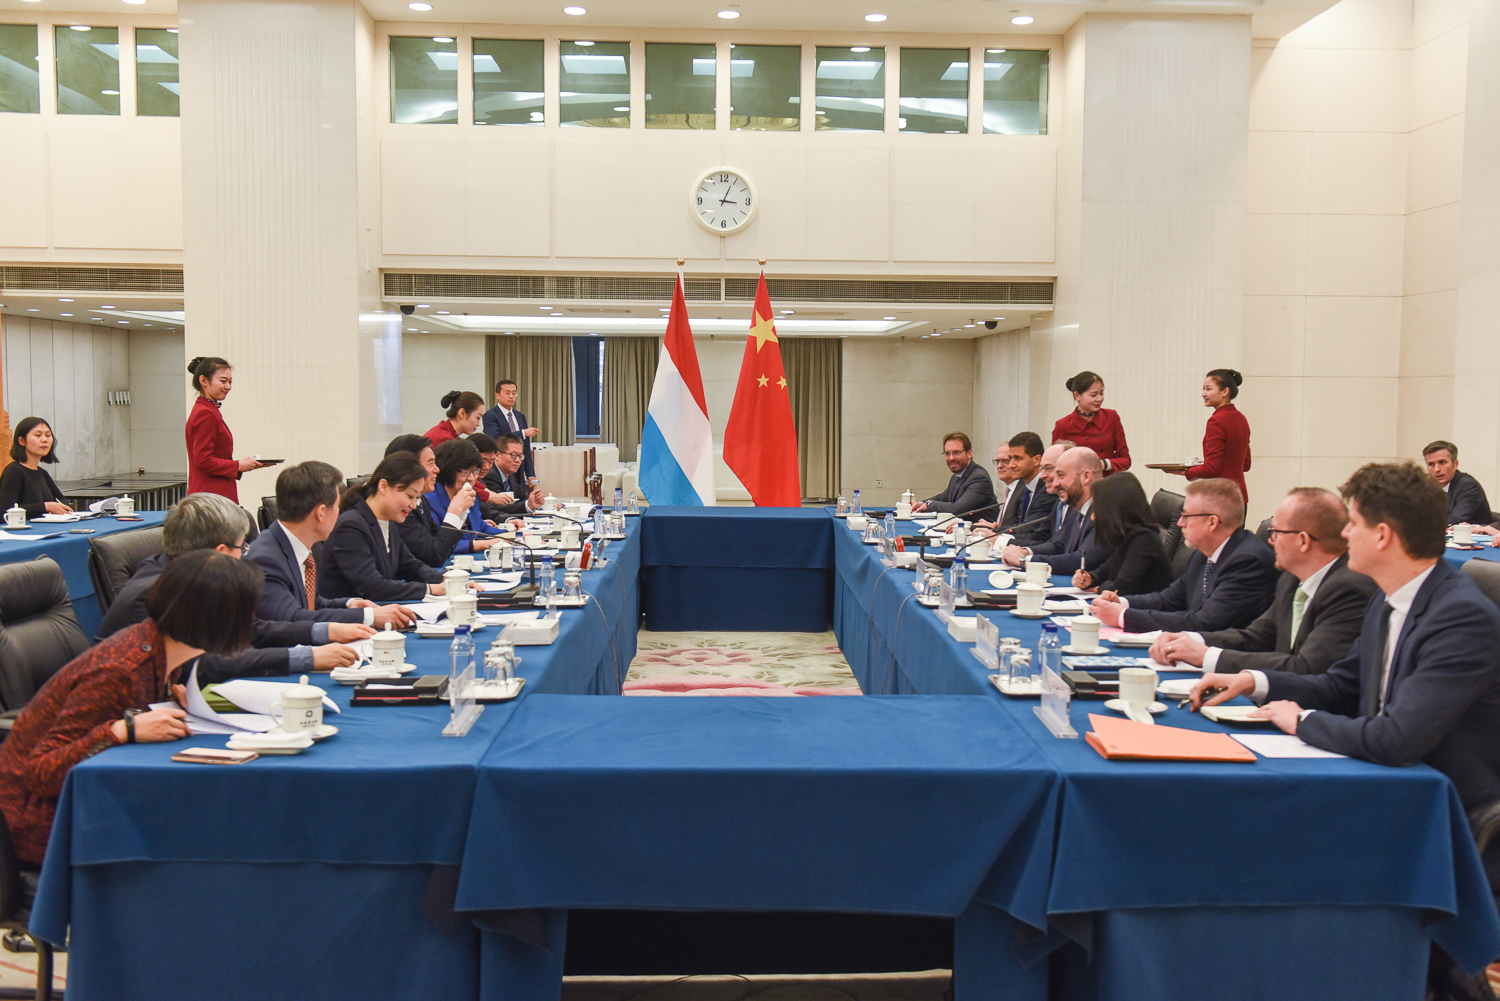 official visit of luxembourg deputy prime minister minister of the economy etienne schneider in beijing statement 16 01 18